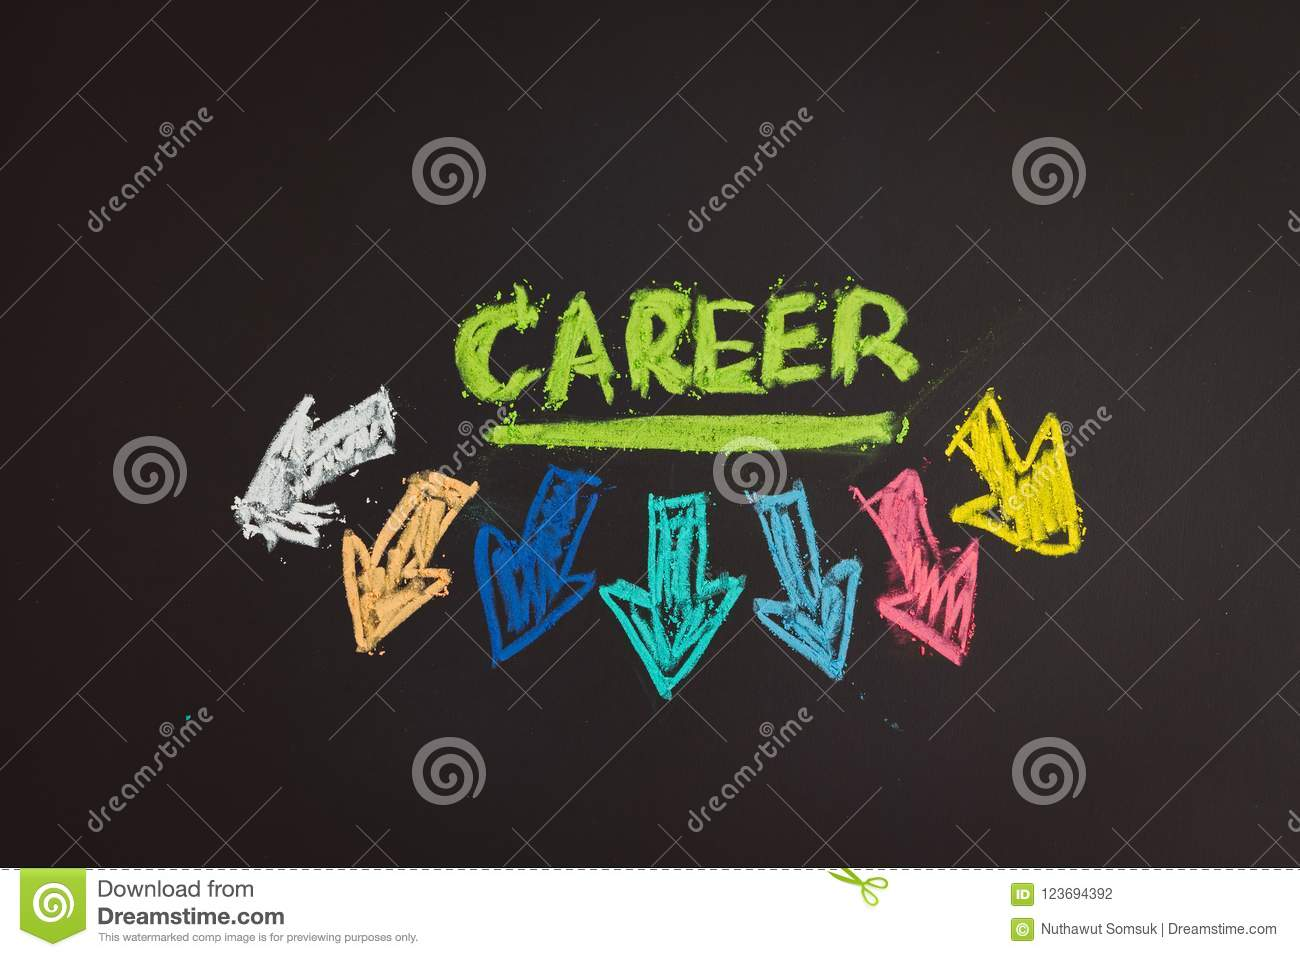 Career Path And Work Opportunities Concept, Colorful